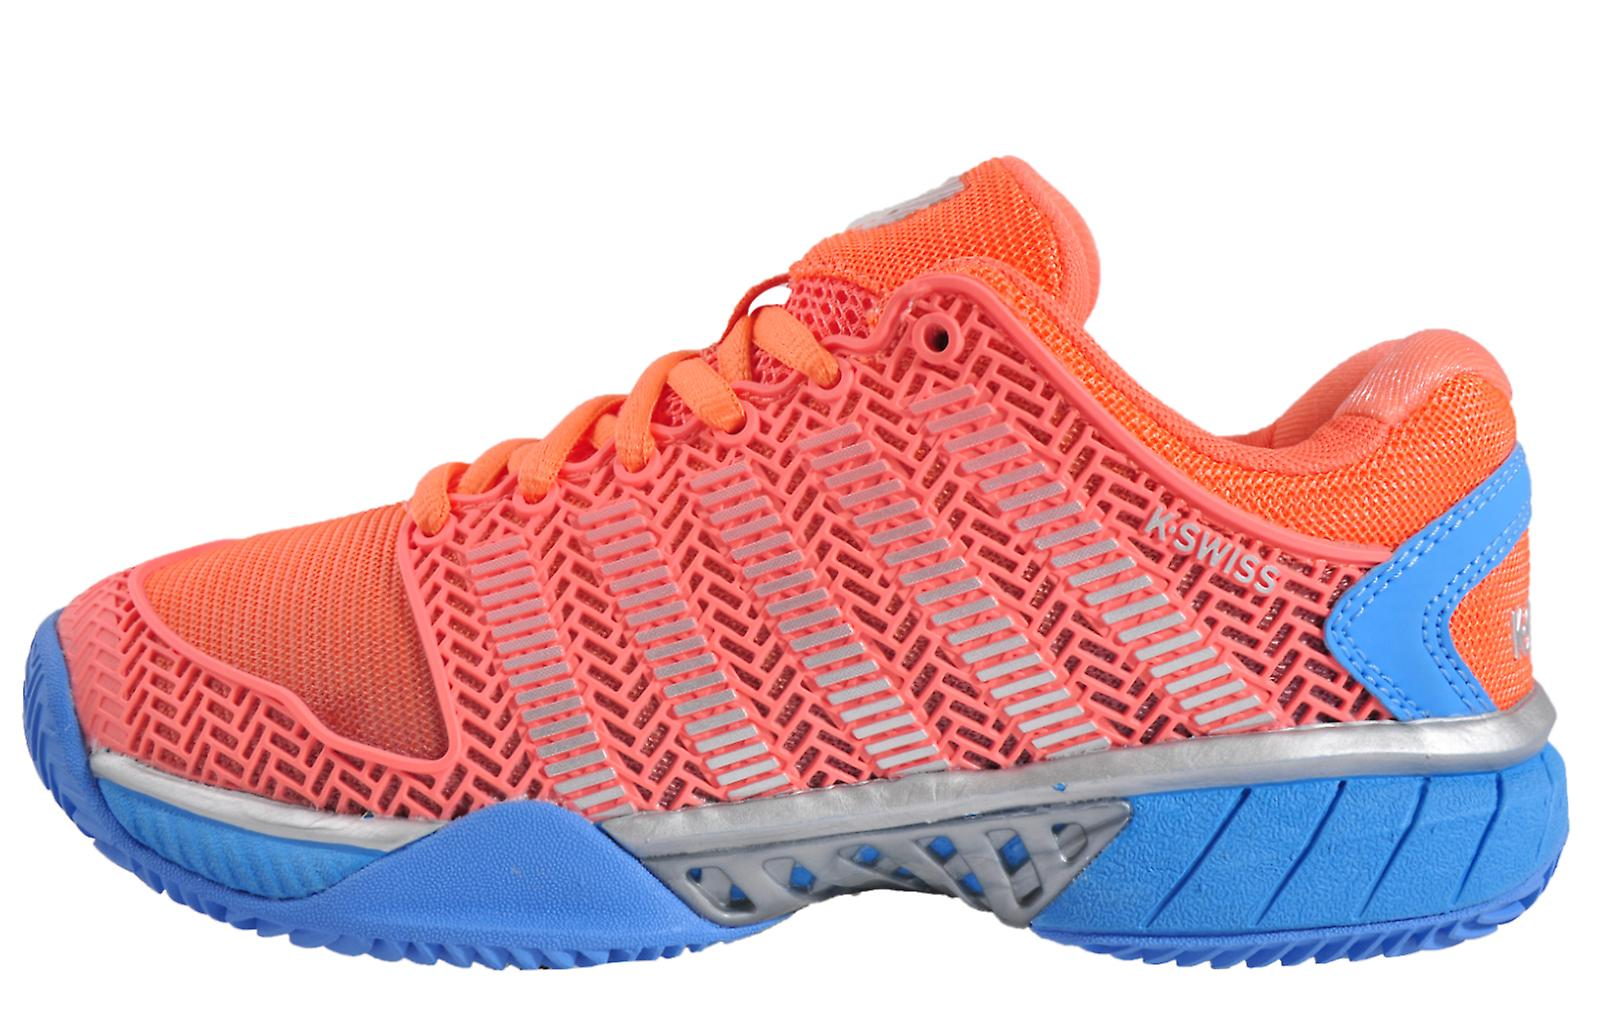 K Swiss Hypercourt Express HB Blue / Orange Colar / Blue